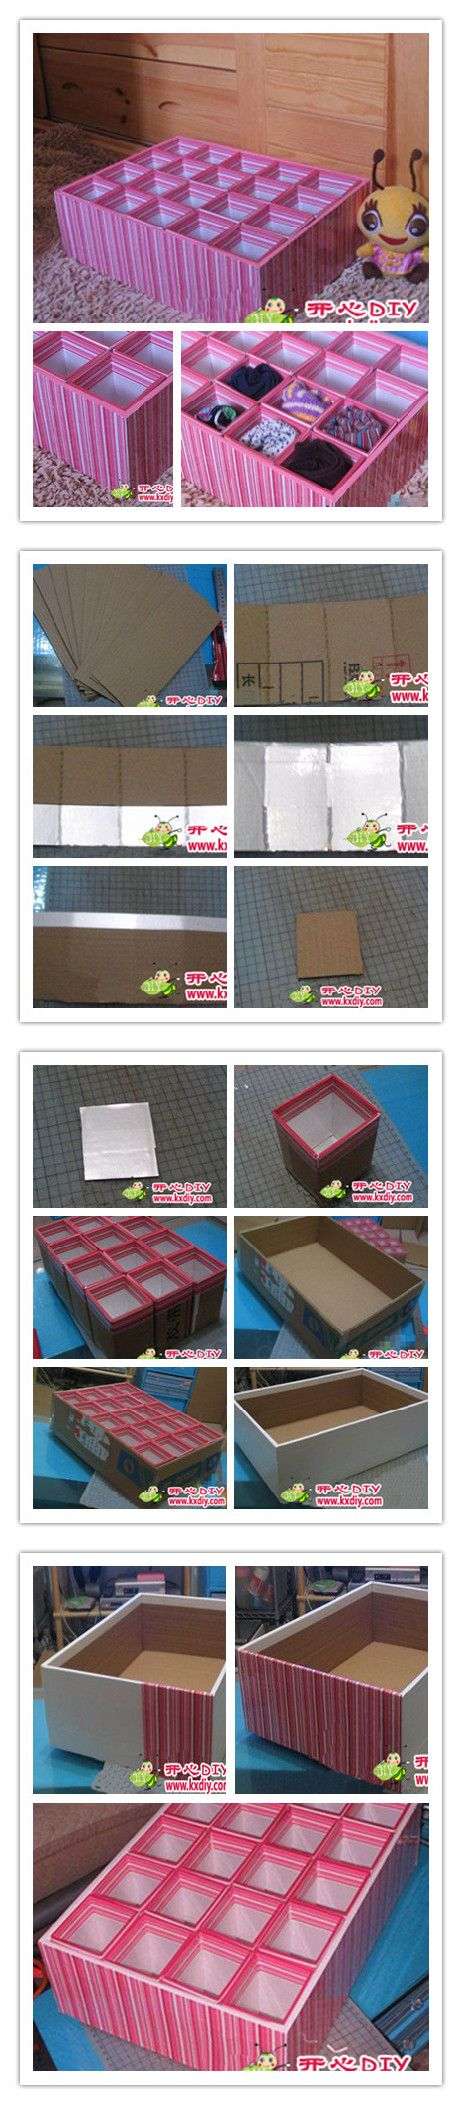 Teach you to make another on the underwear storage box from happy diy steps as shown within the box cardboard size: long 26CM W 12CM (done a bit high, 10CM better offer nearly enough) Cardboard middle of the inner box with CD paper the other side of the blade cutting, do not cut through.  Interval is 8 * 5 * 8 * 5 do 4 * 5 = 20 boxes, not too difficult